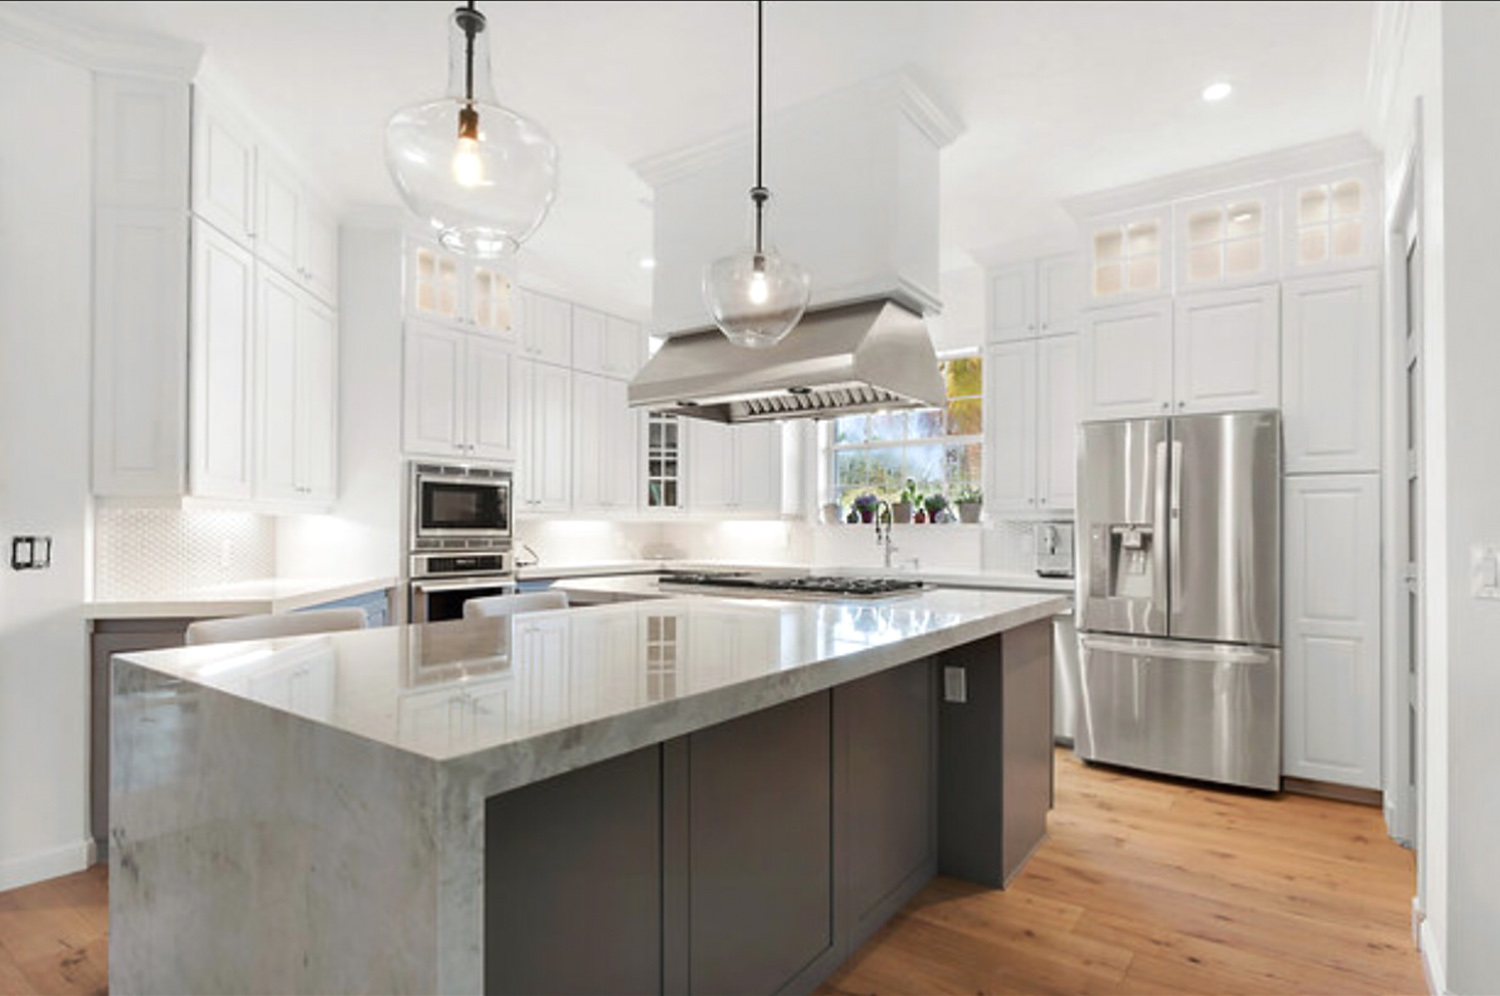 Home Remodeling Renovations - Loxahatchee, West palm Beach, Wellington, Palm Beach County - Strong Builders